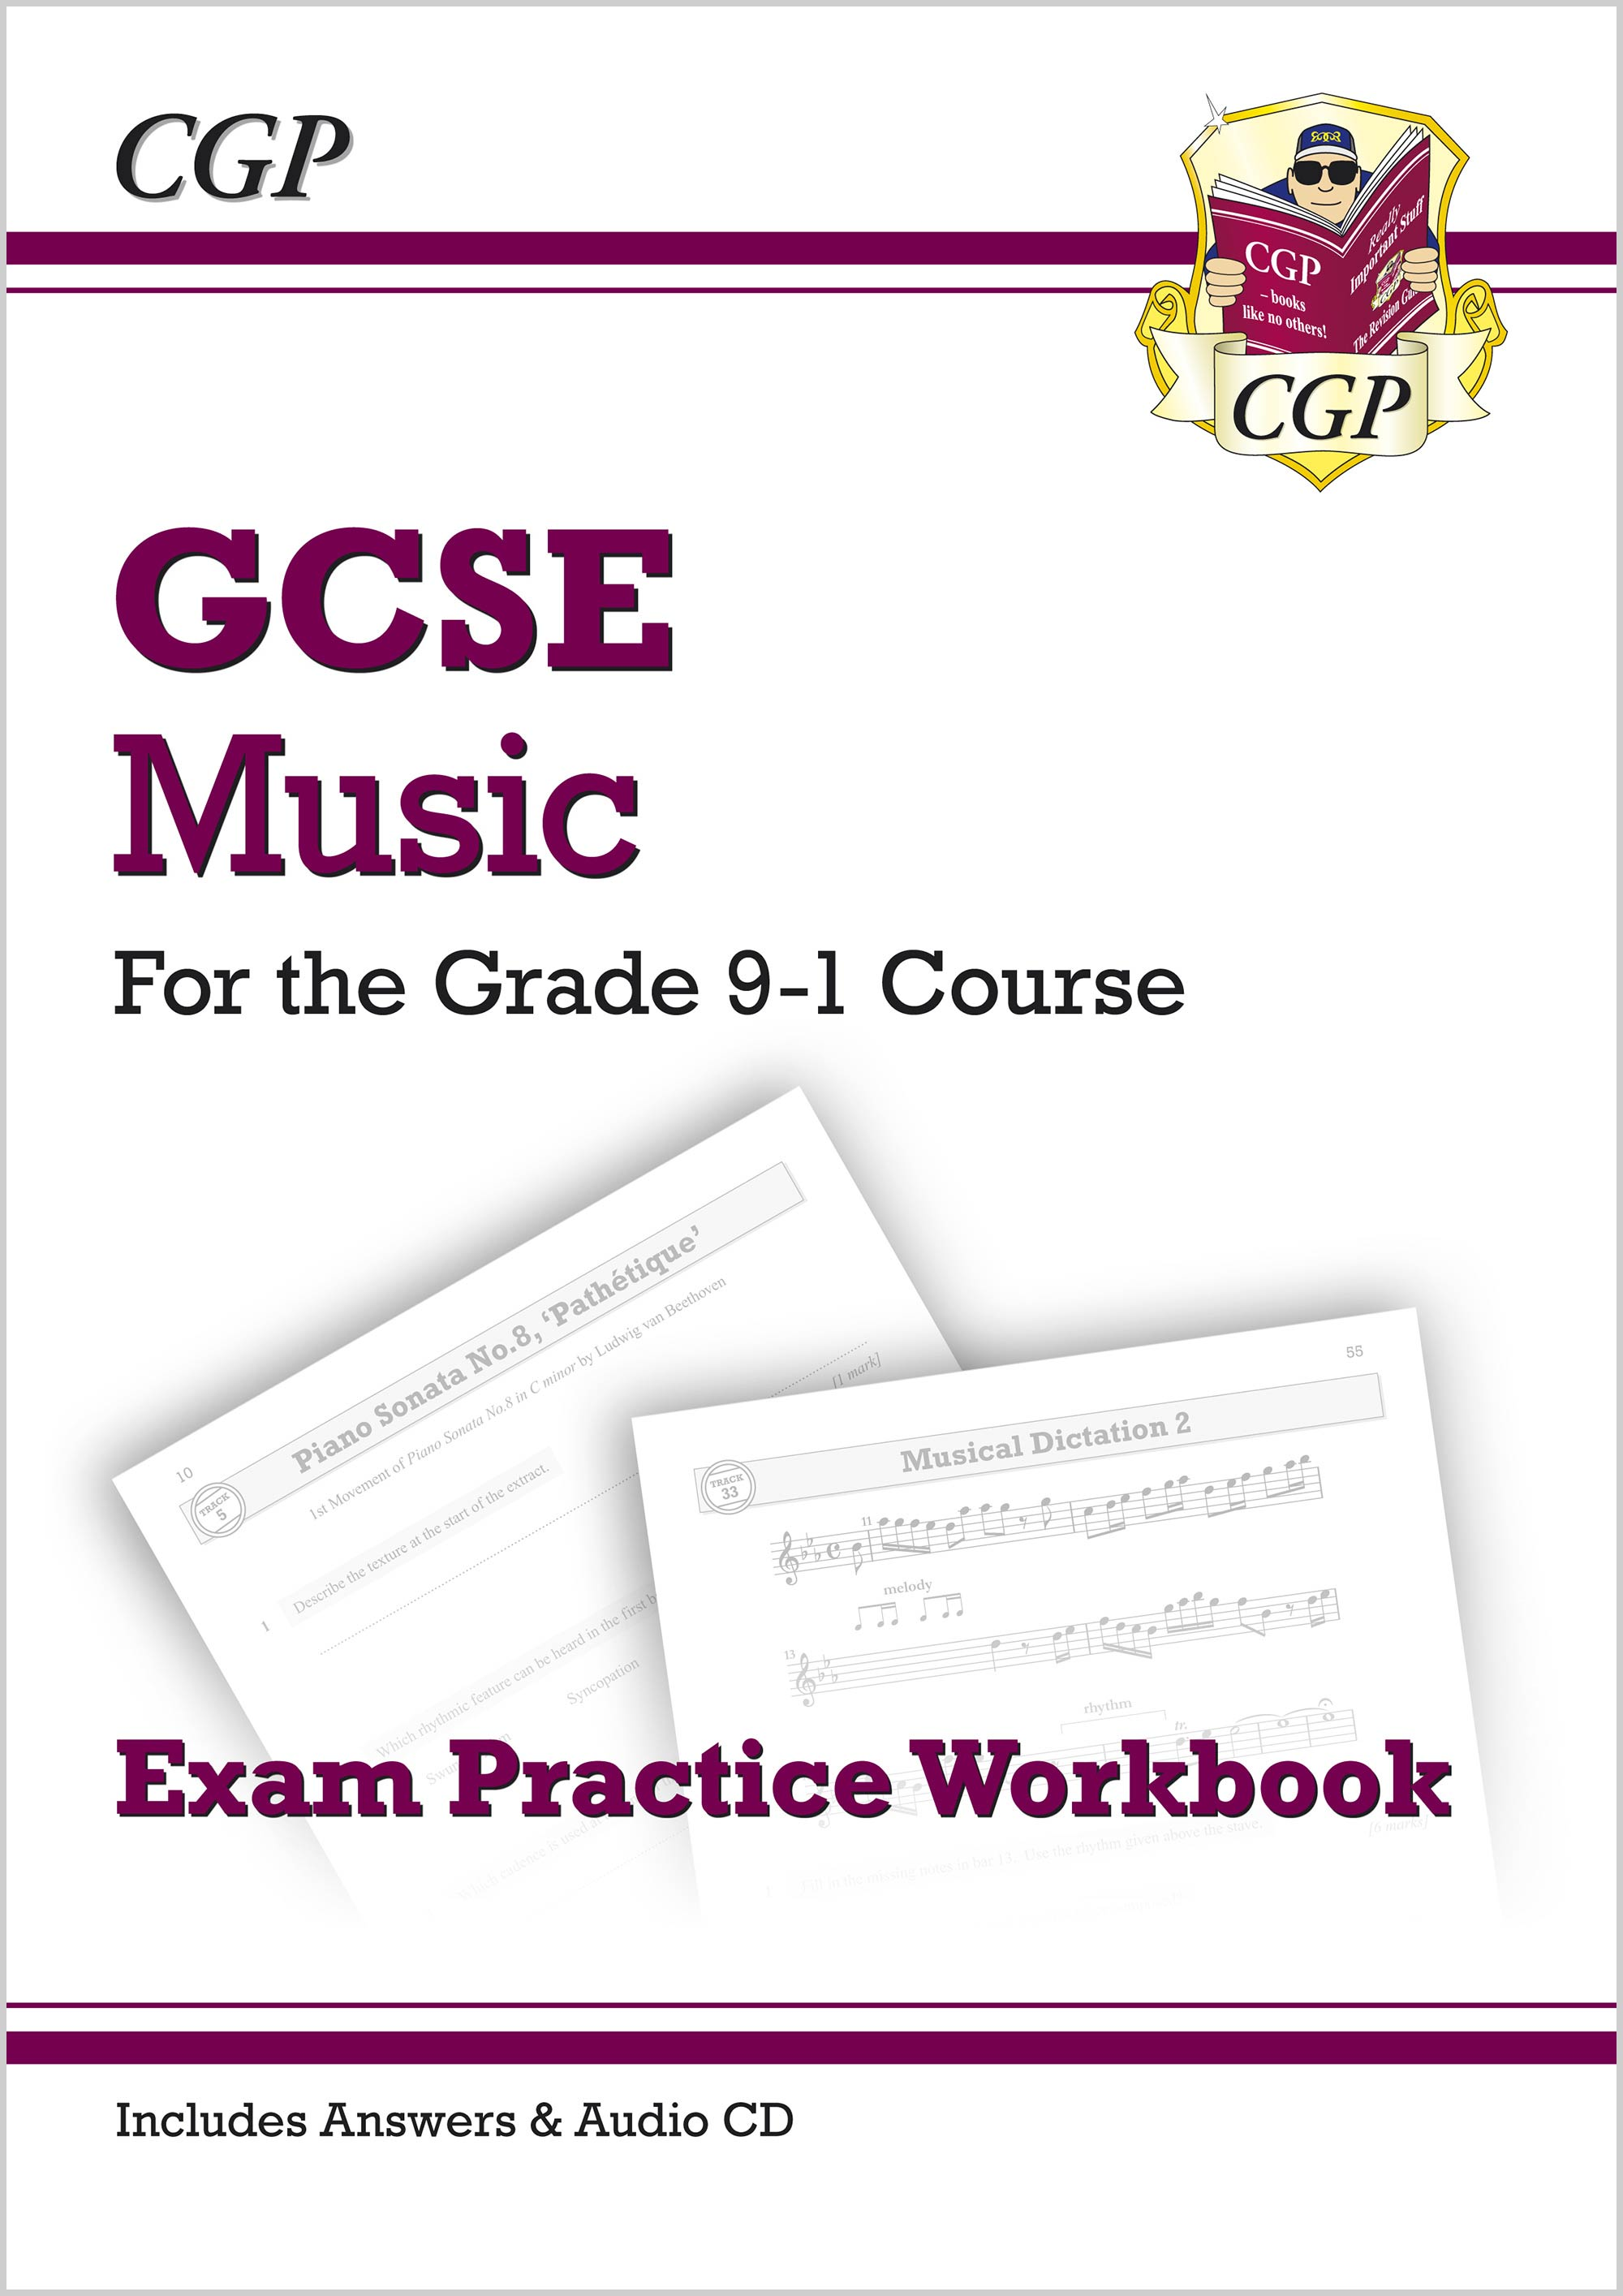 MUQ41 - GCSE Music Exam Practice Workbook - for the Grade 9-1 Course (with Audio CD & Answers)